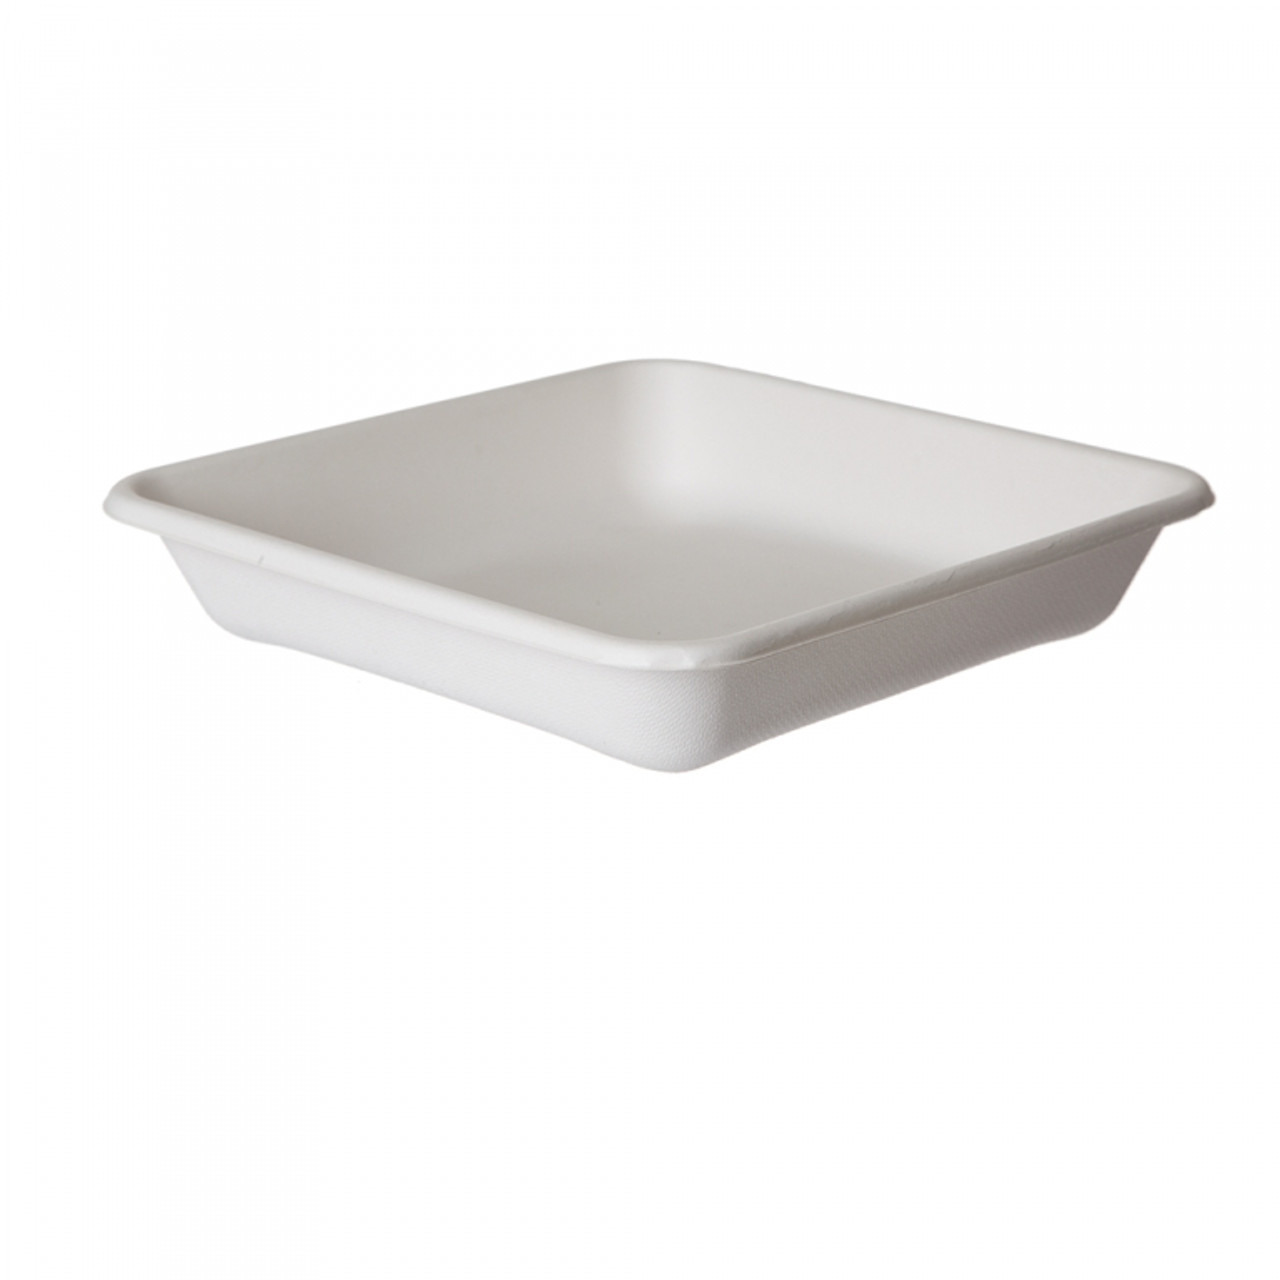 Sugarcane Take-Out Containers - 9 inch Square